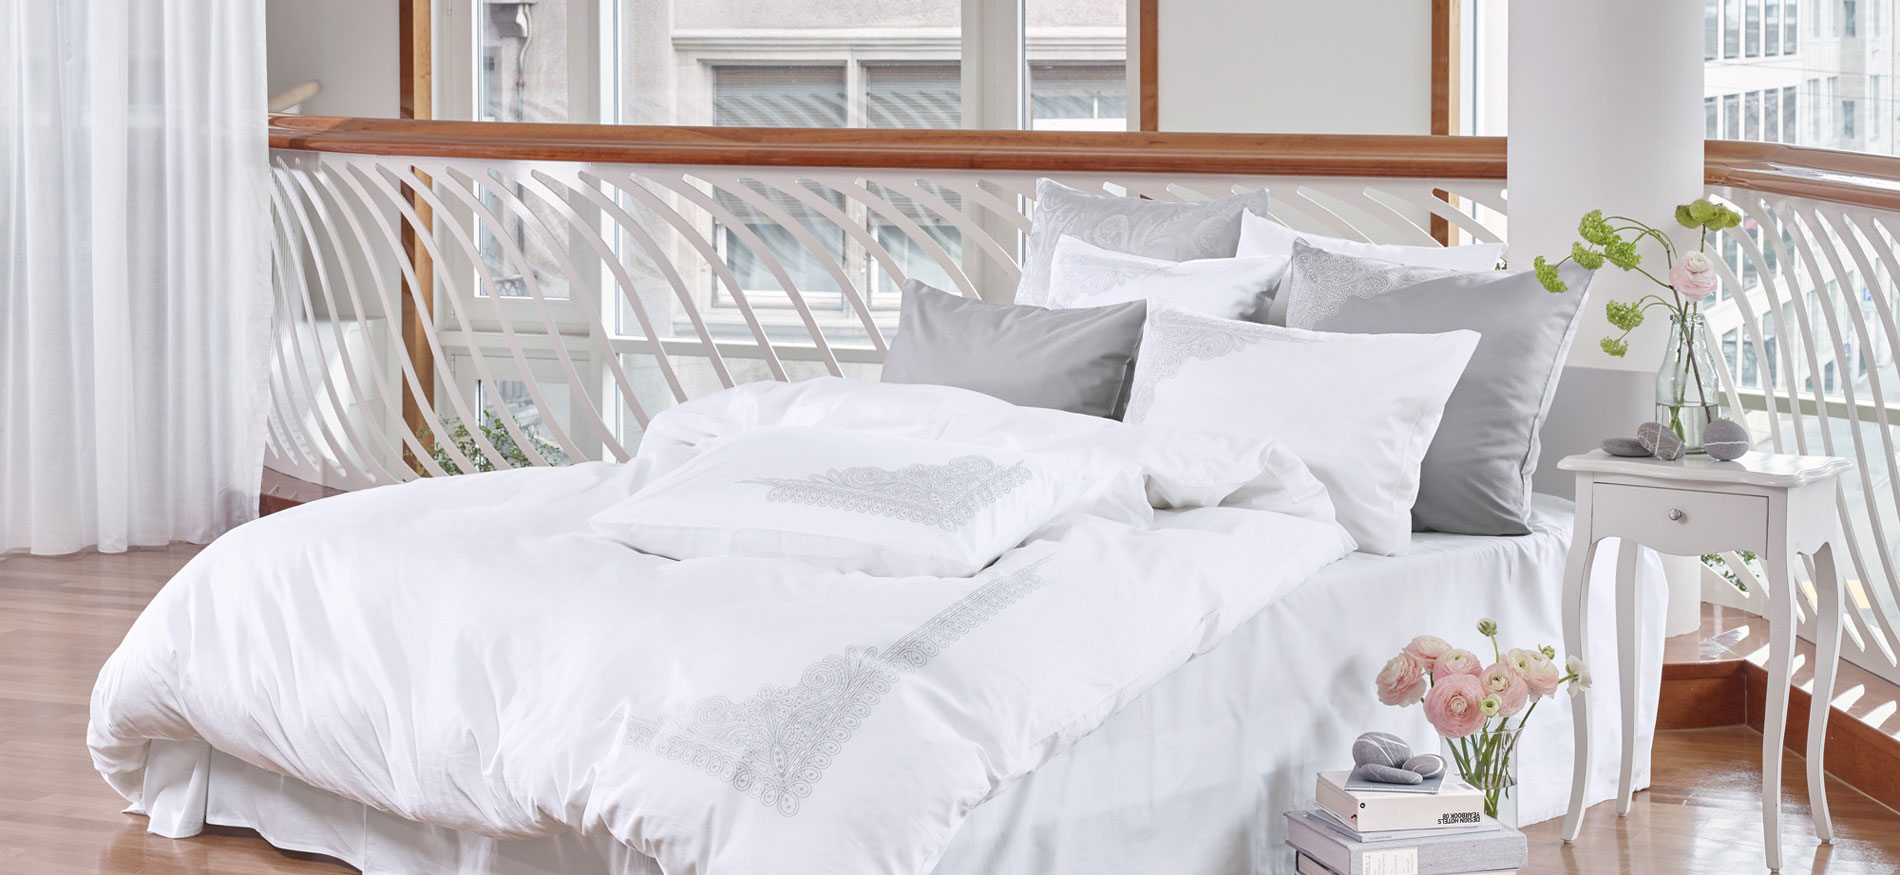 Luxury Nights Bed Linen by Christian Fischbacher